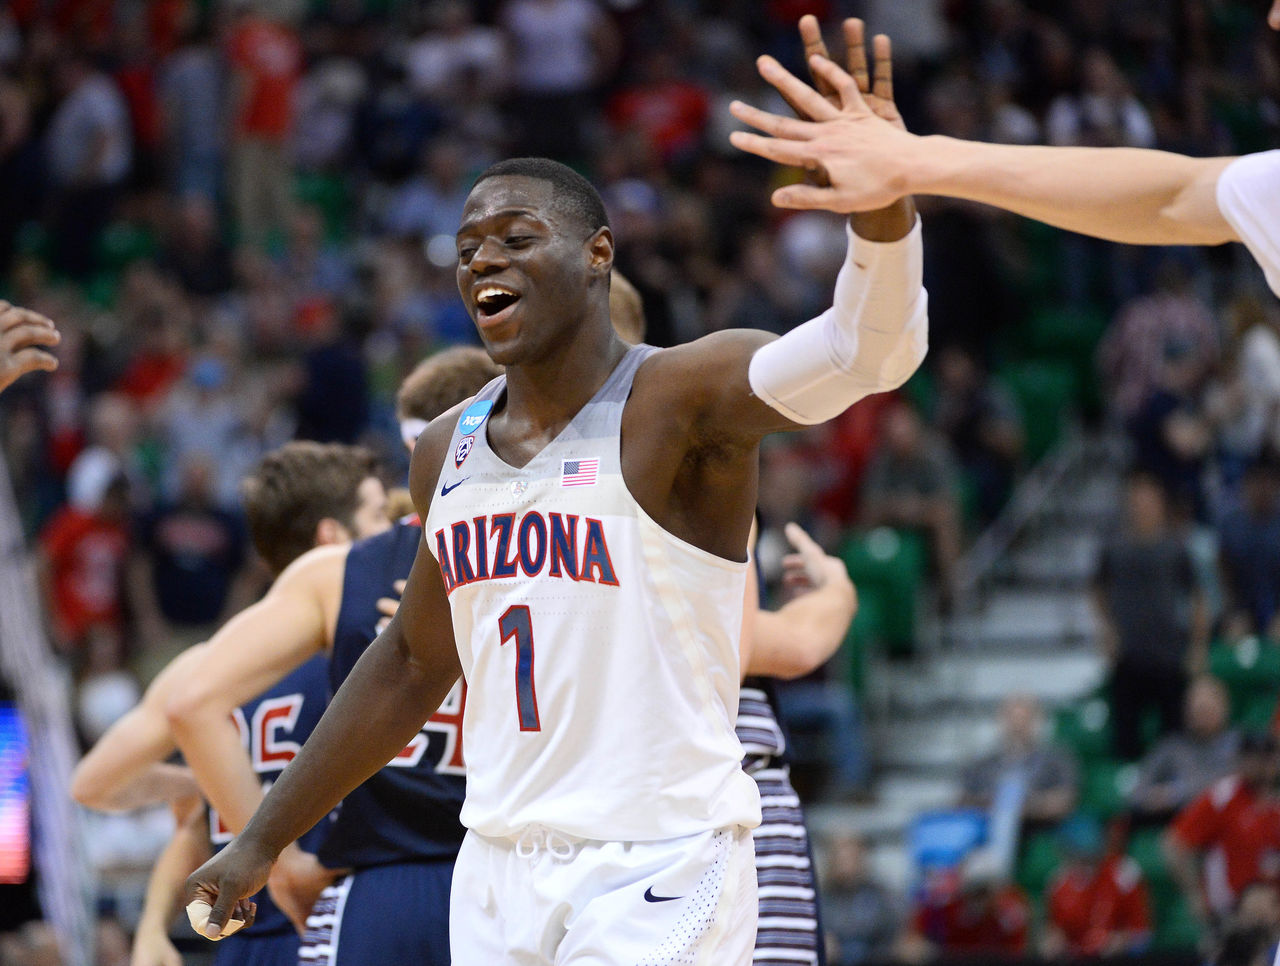 Cropped 2017 03 19t023536z 352938281 nocid rtrmadp 3 ncaa basketball ncaa tournament second round arizona vs saint mary s